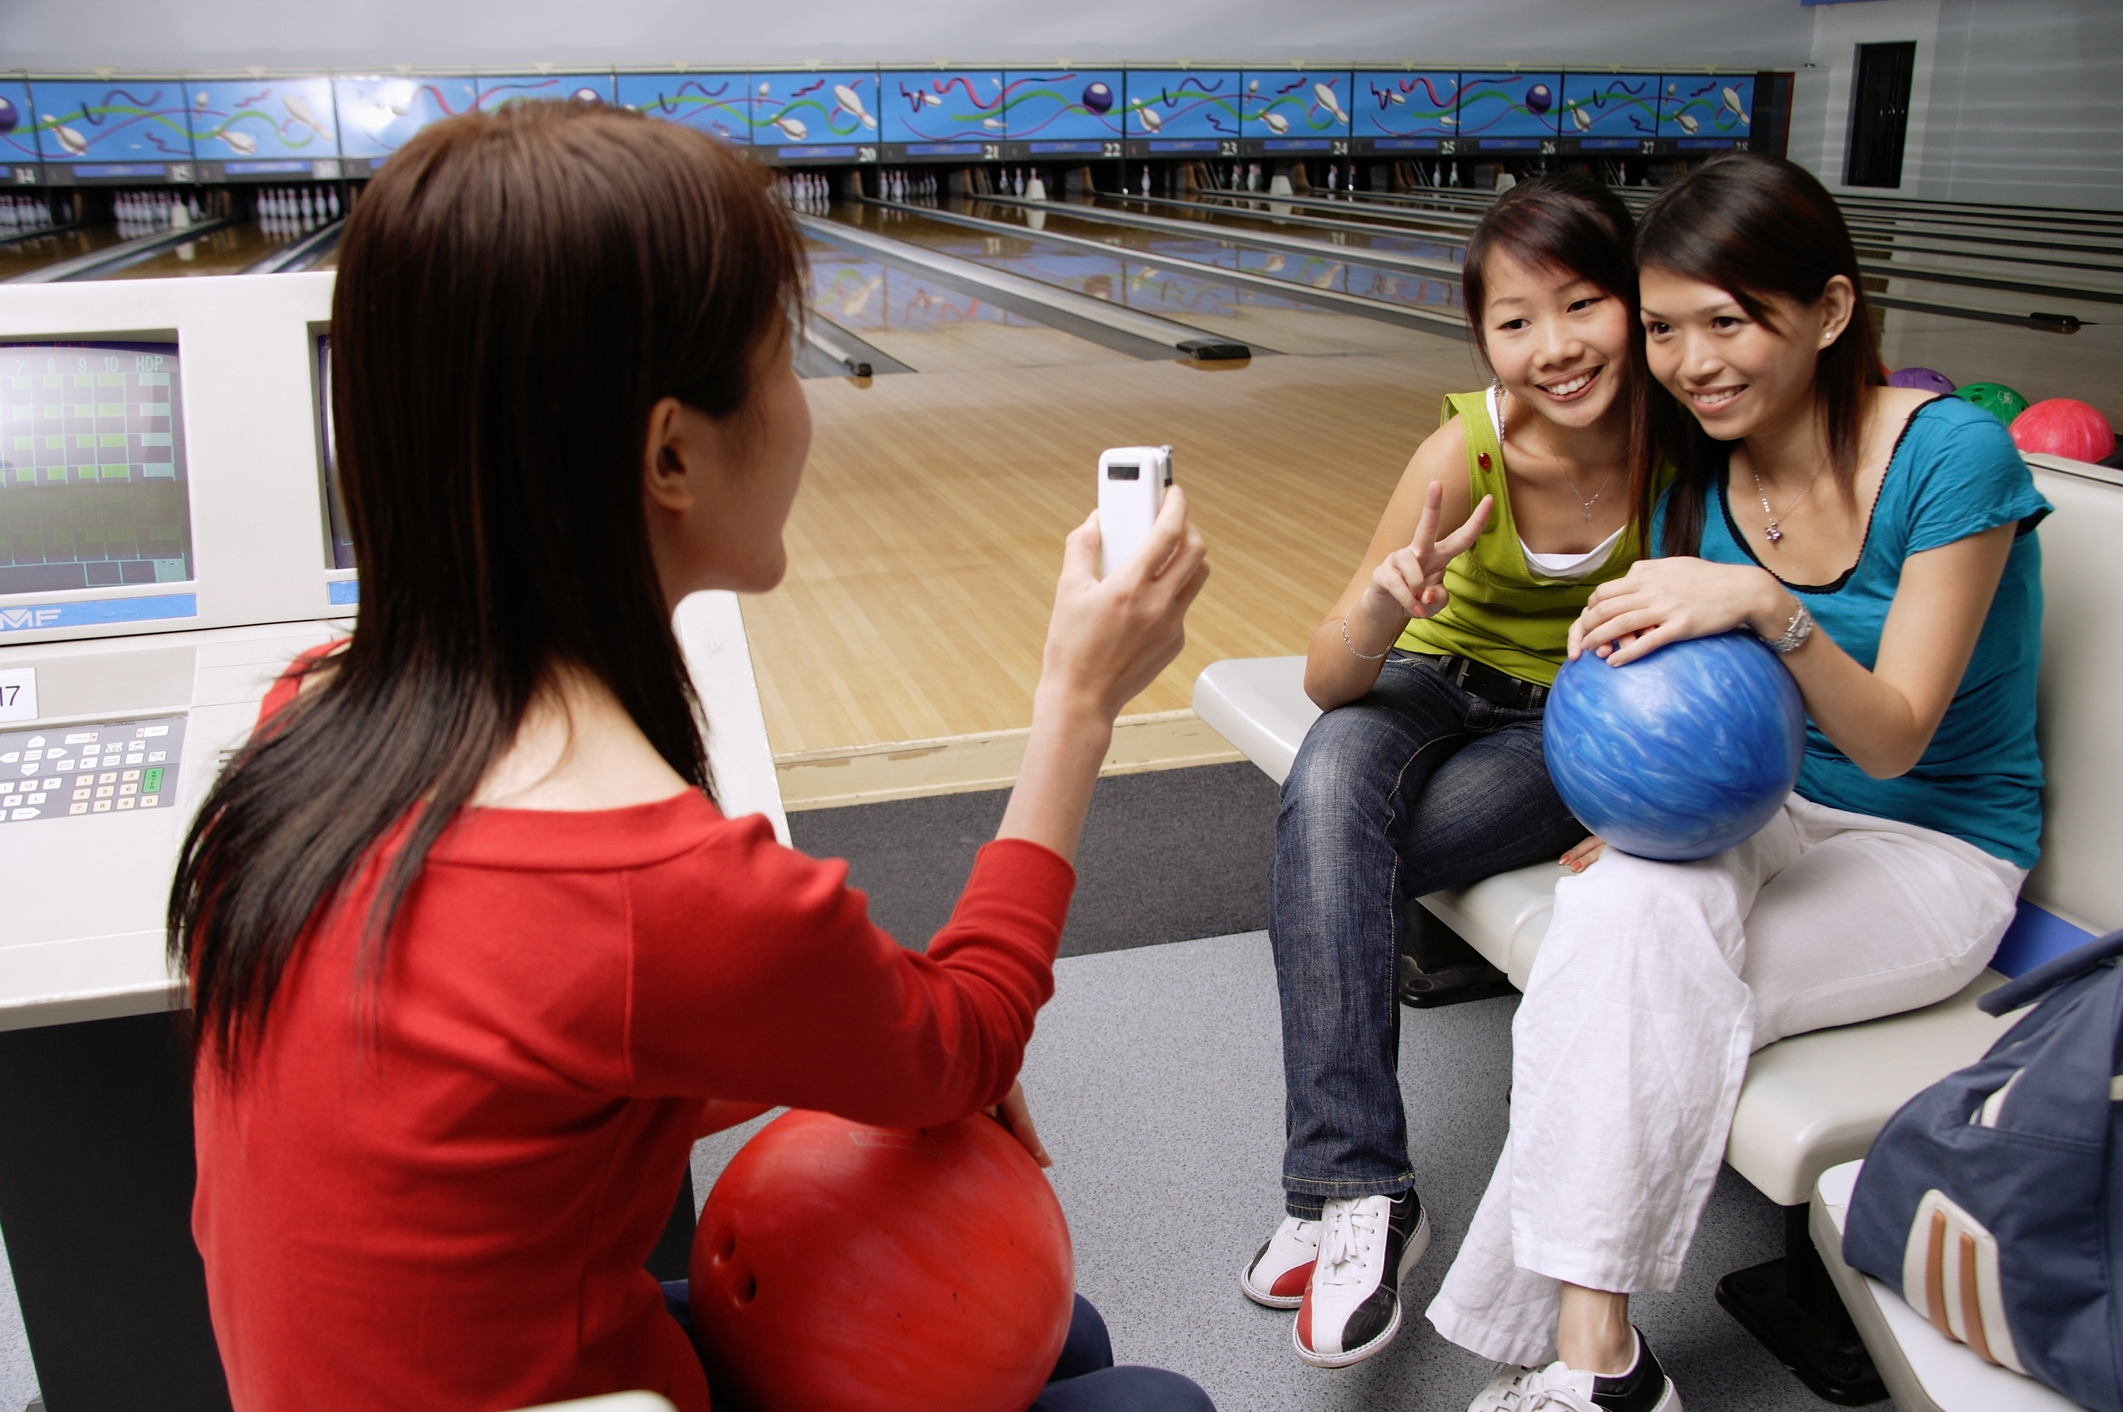 Women in bowling alley, posing for friends phone camera